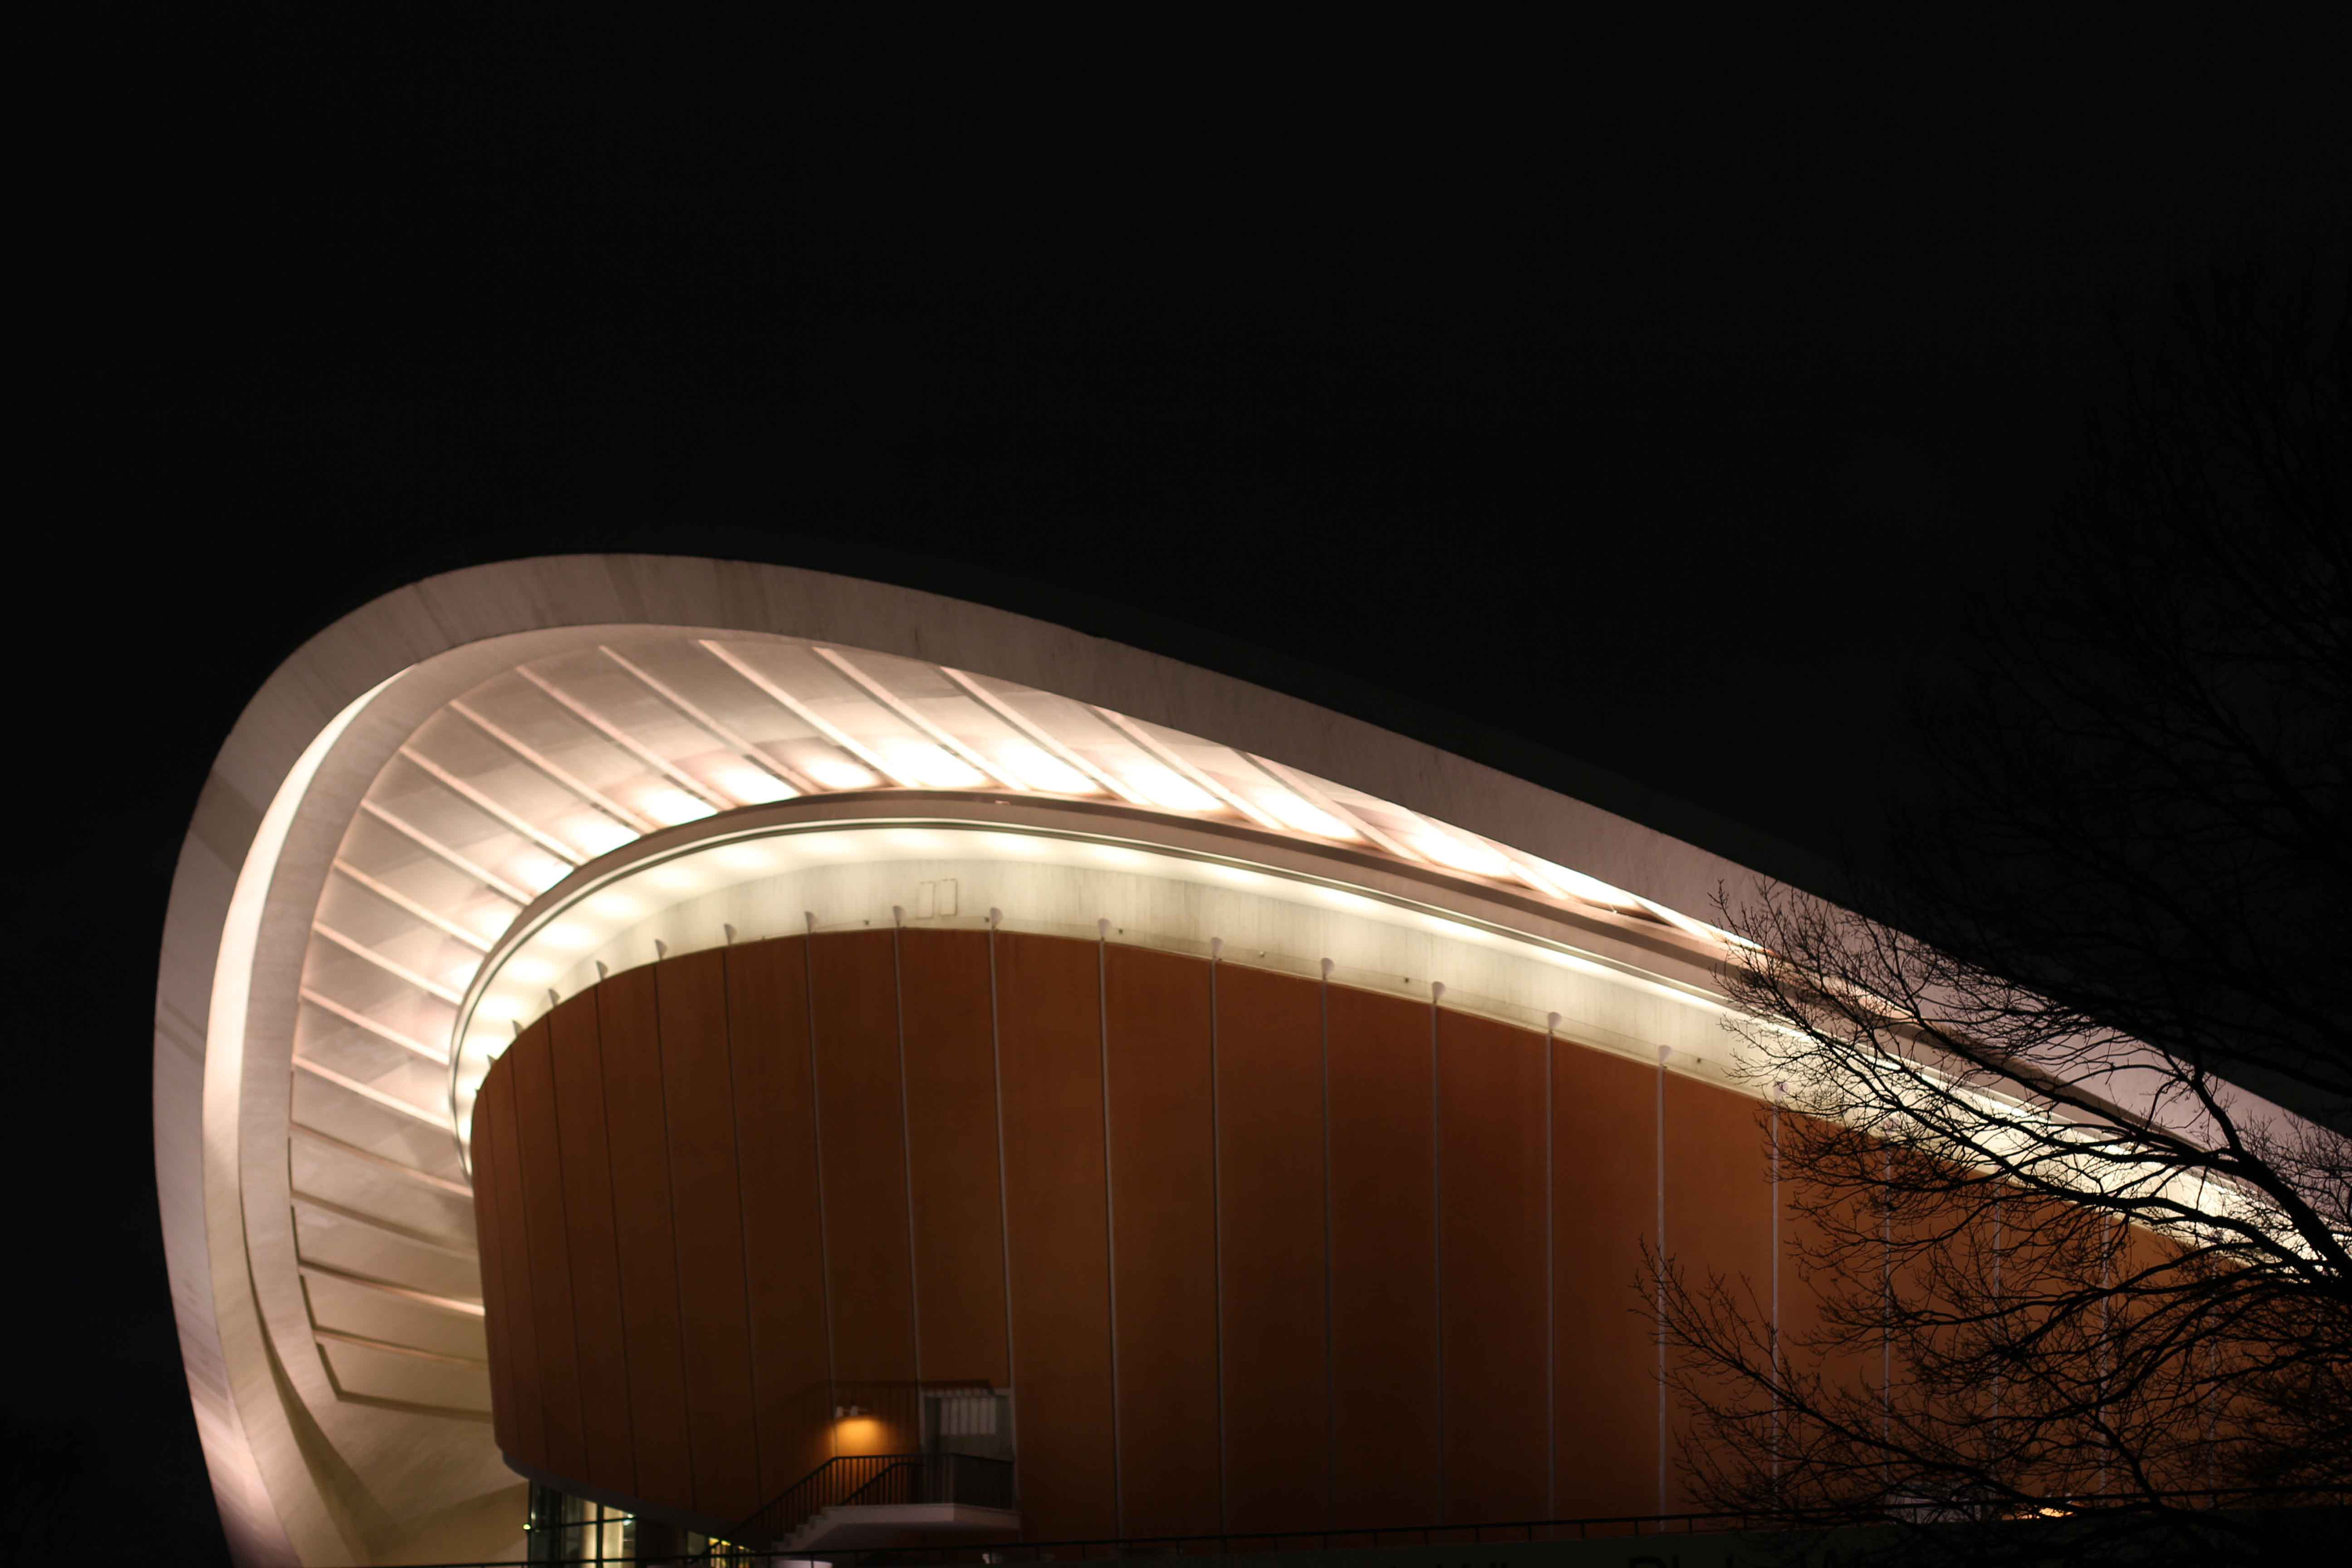 Haus der Kulturen der Welt Berlin at Night